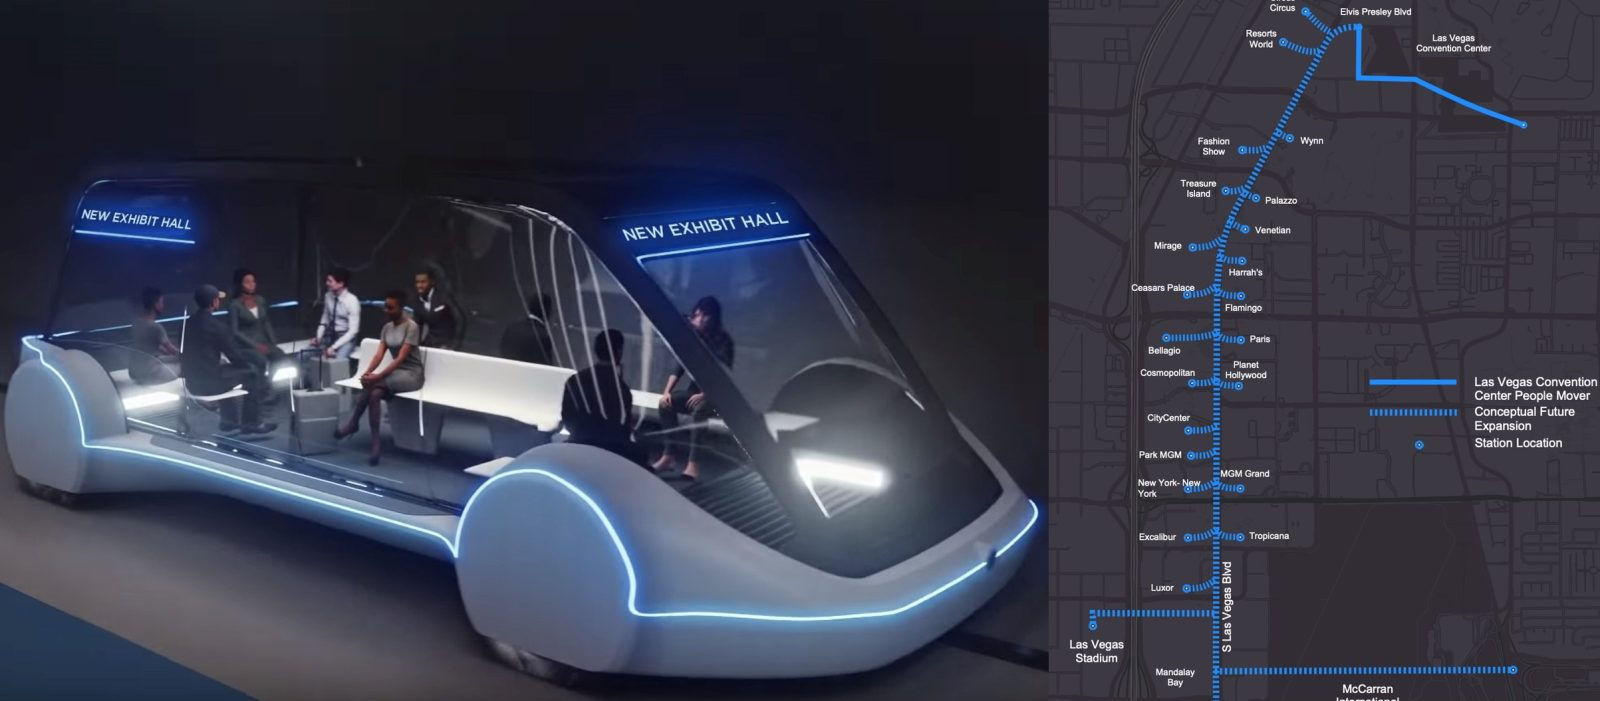 62aca0d589f Elon Musk s Boring Company is announcing today a new proposed  Loop  system  of tunnels for approval in Las Vegas.